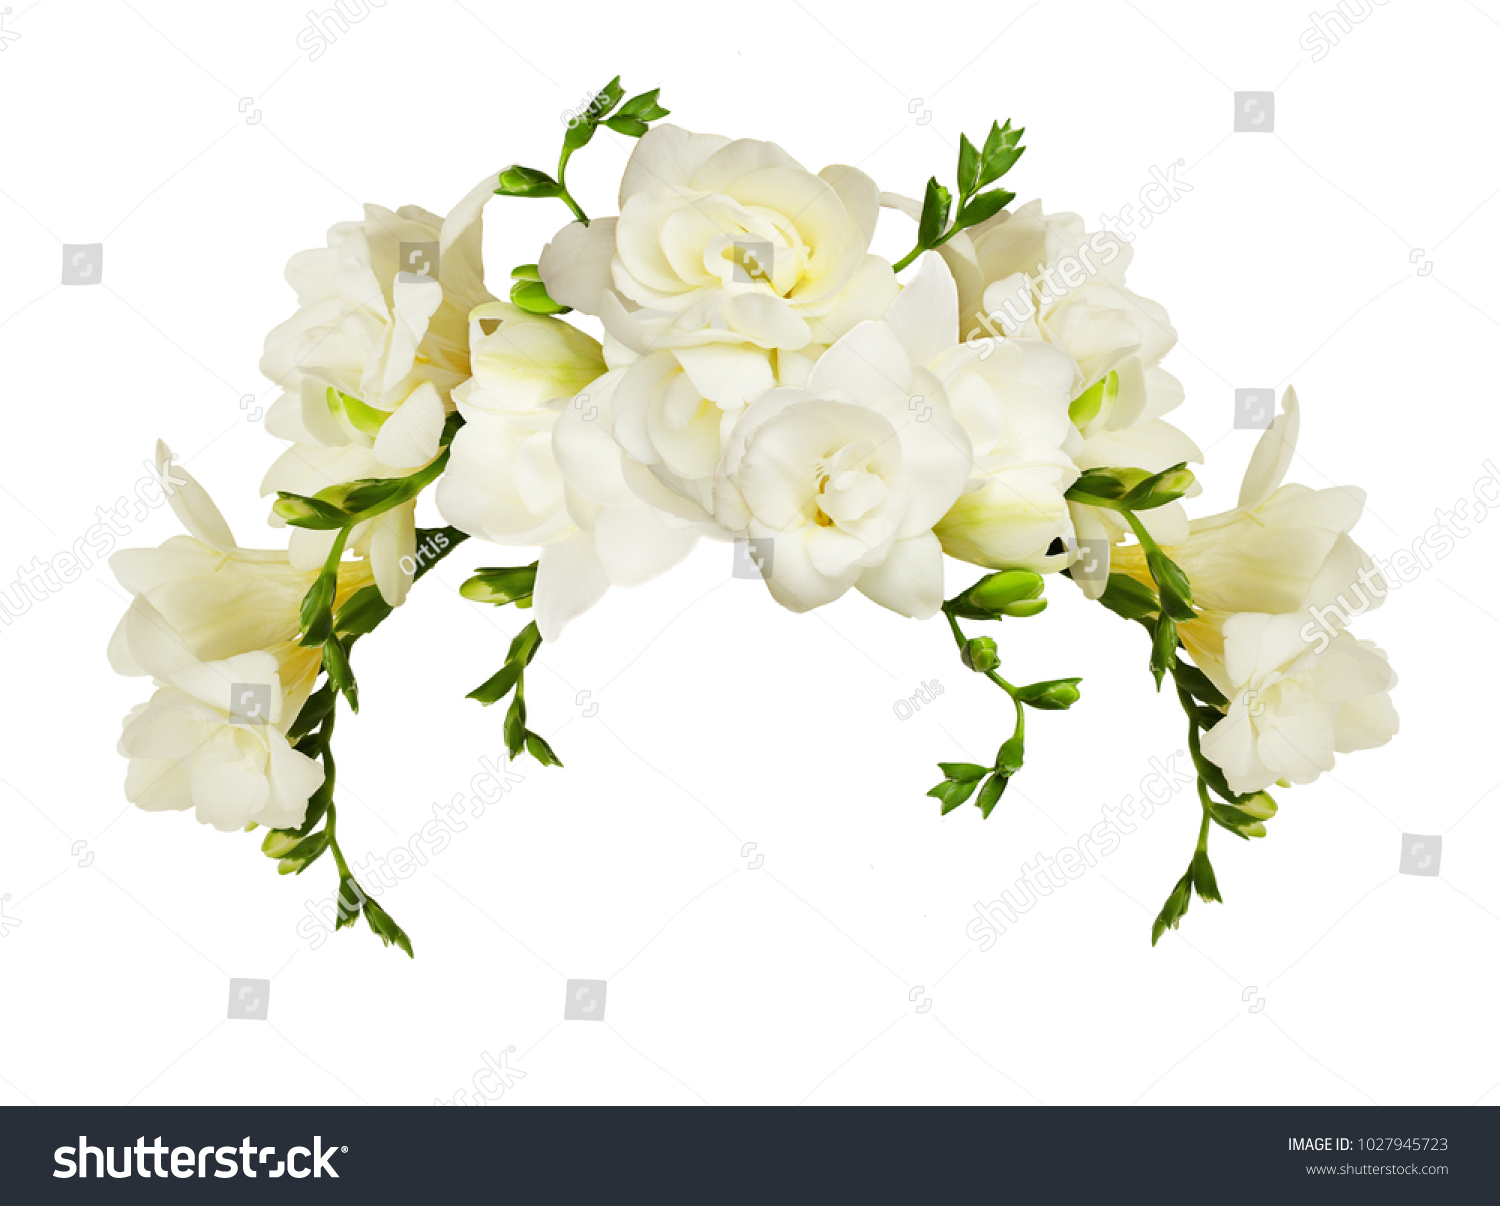 White Freesia Flowers In A Beautiful Arch Arrangment Isolated On